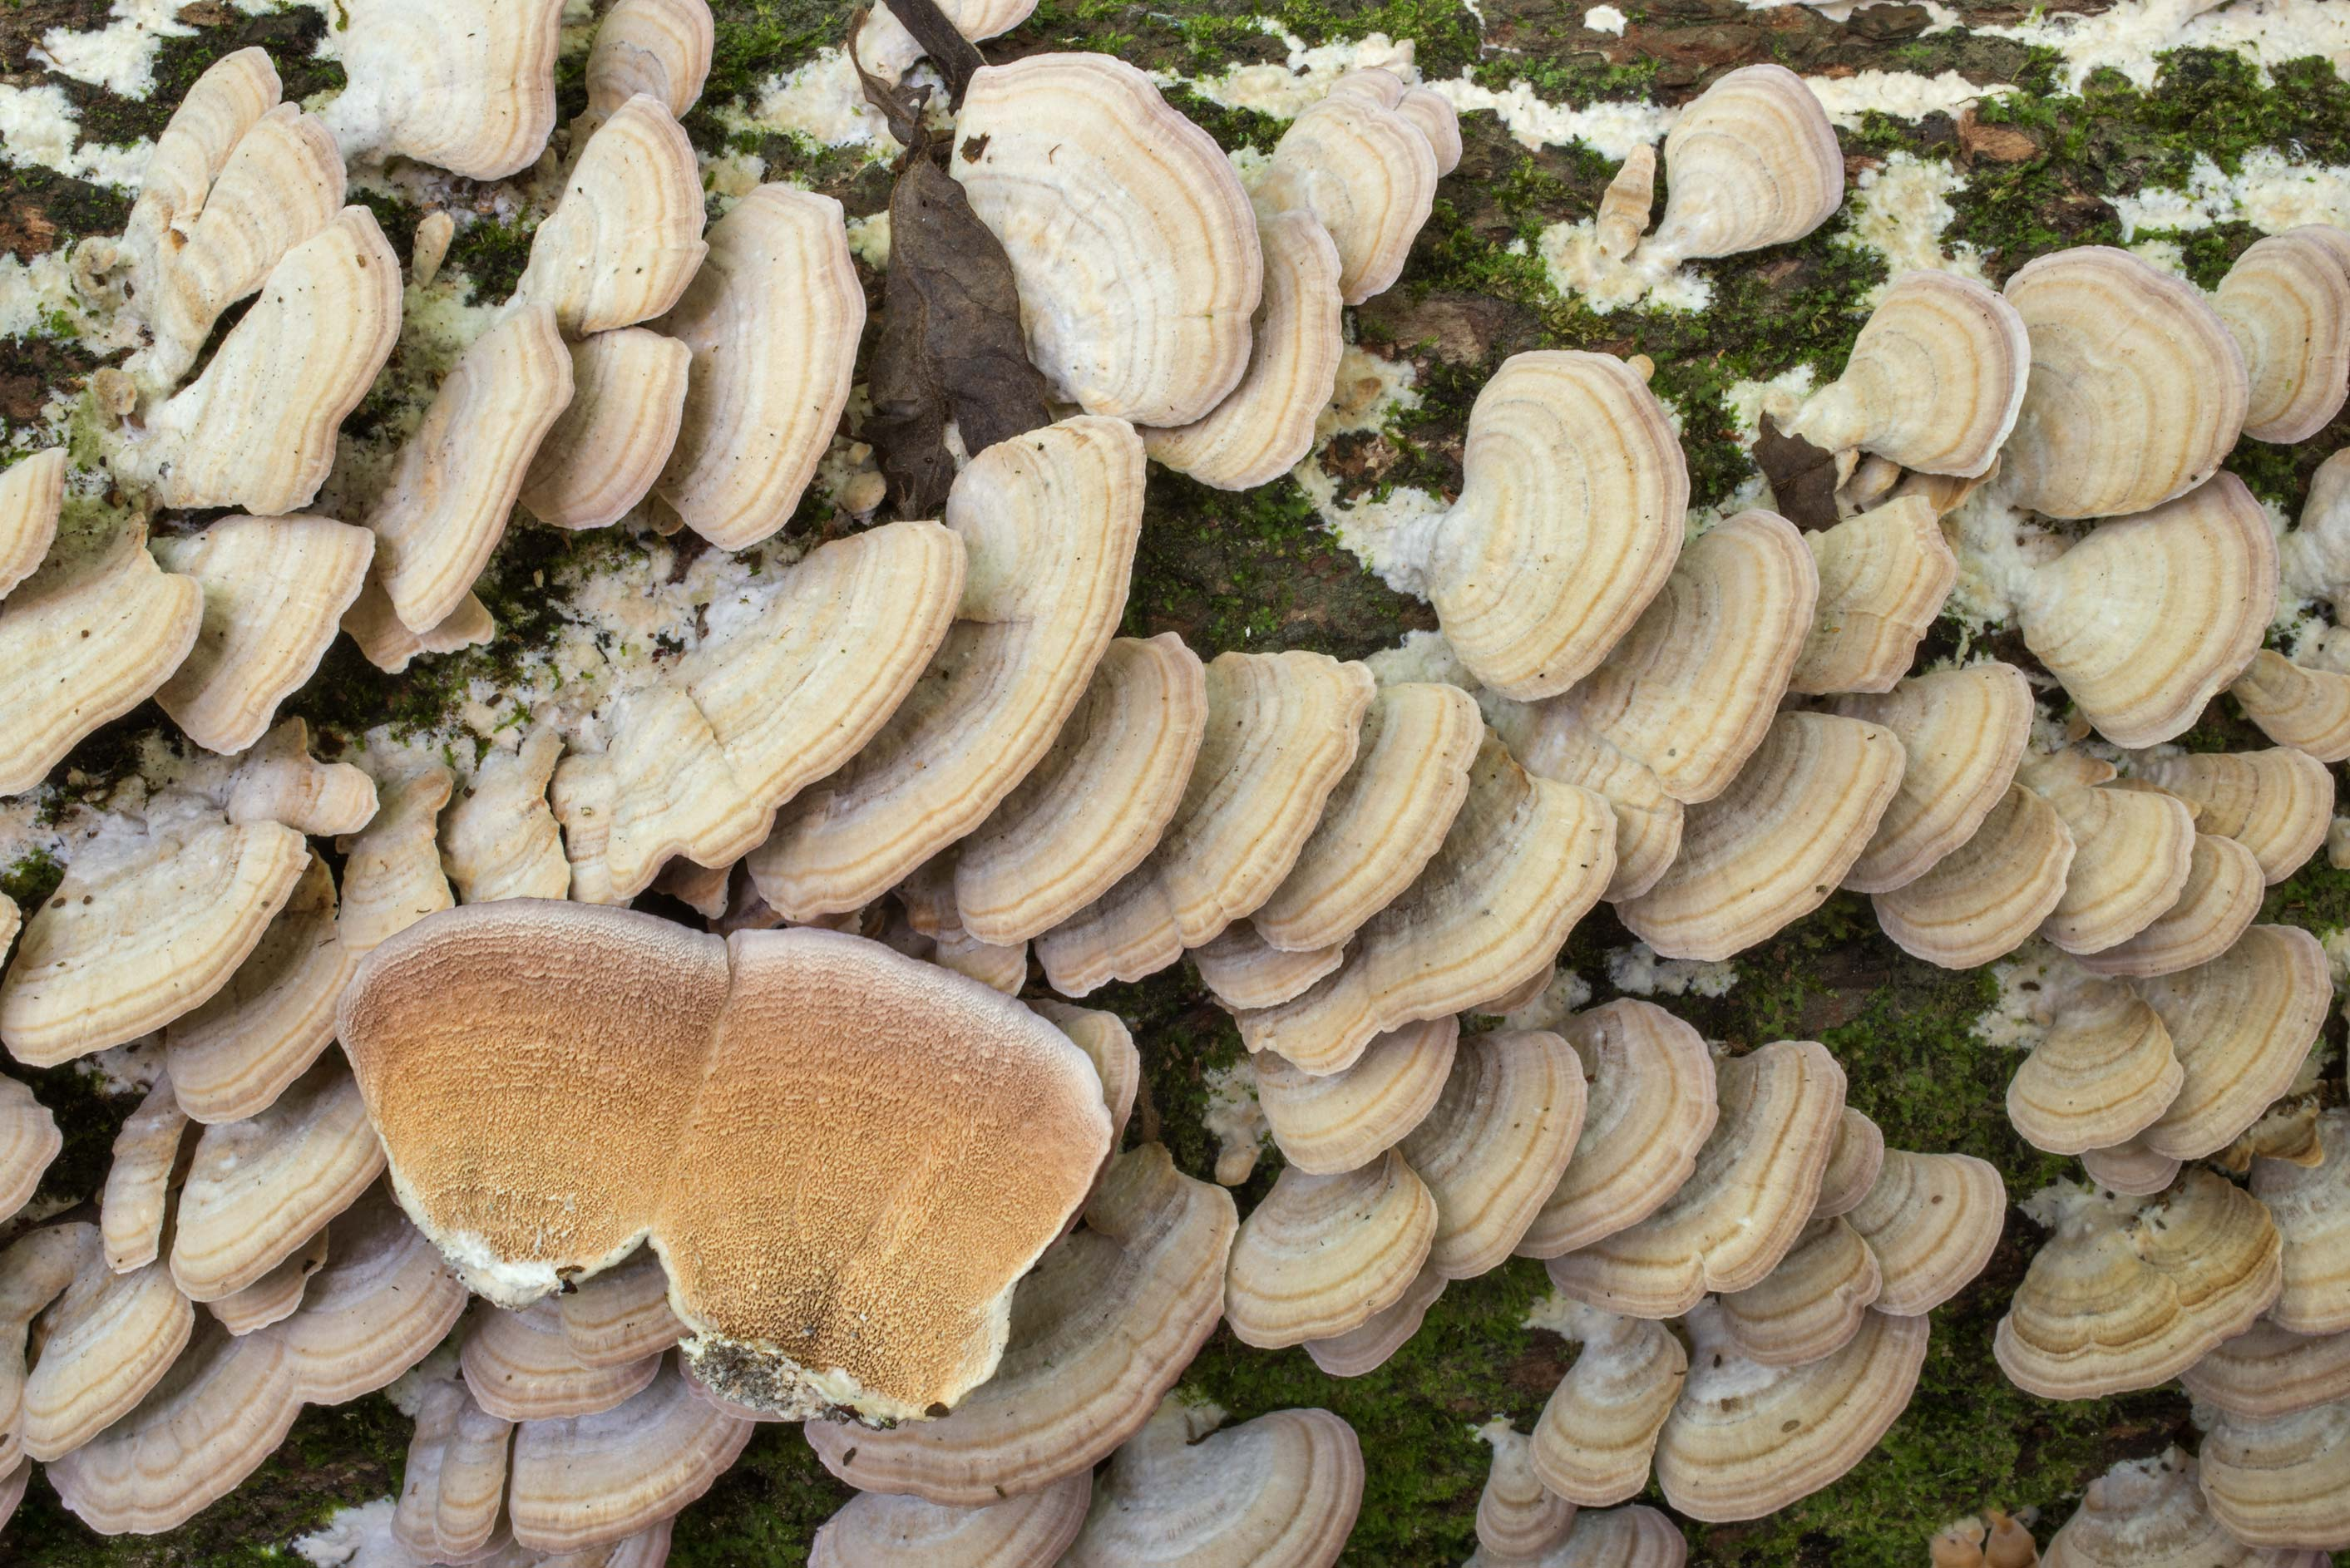 Masses of violet toothed polypore fungus...National Forest. Shepherd, Texas